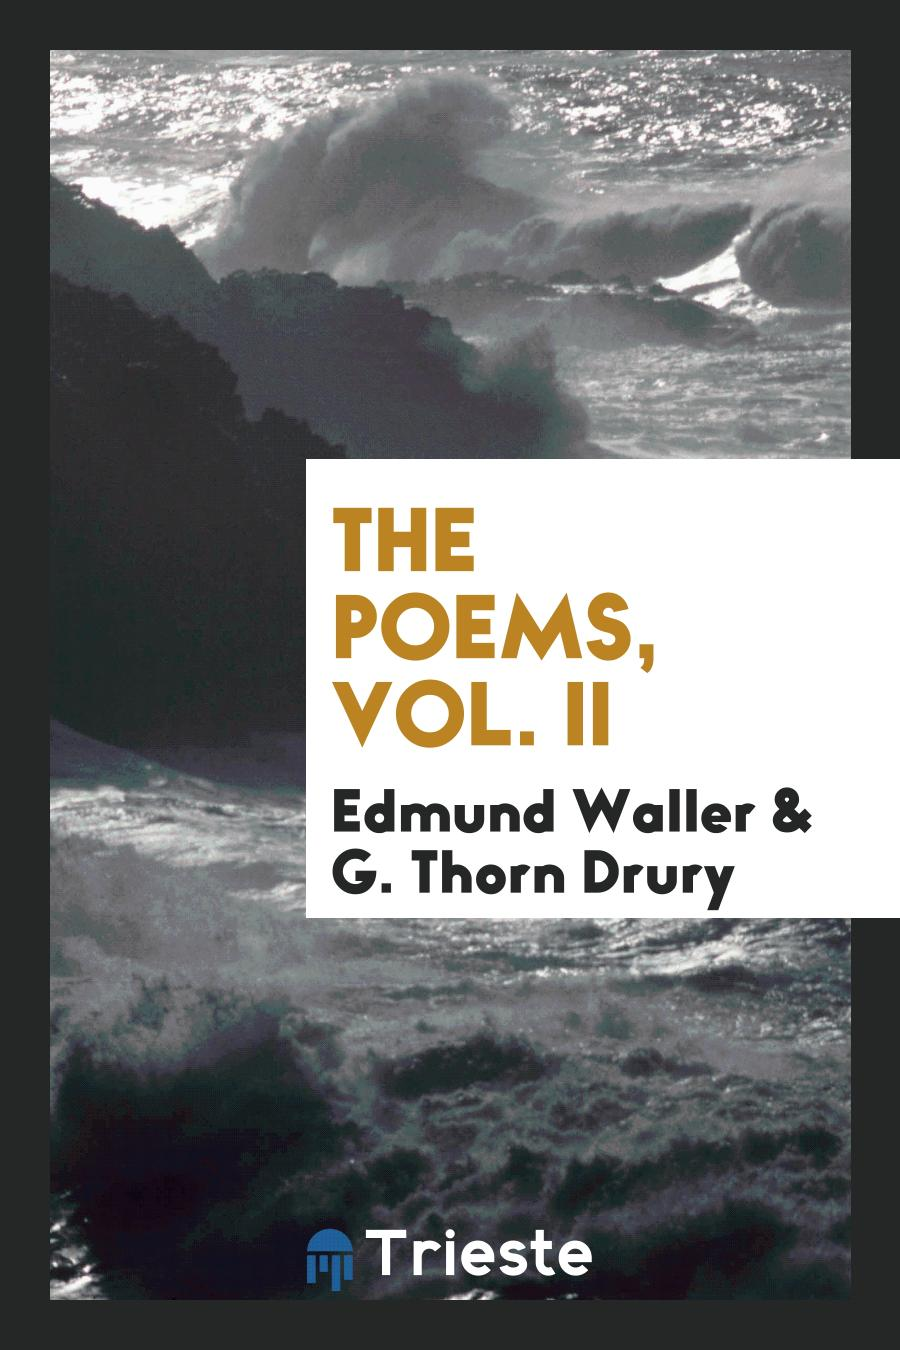 The Poems, Vol. II